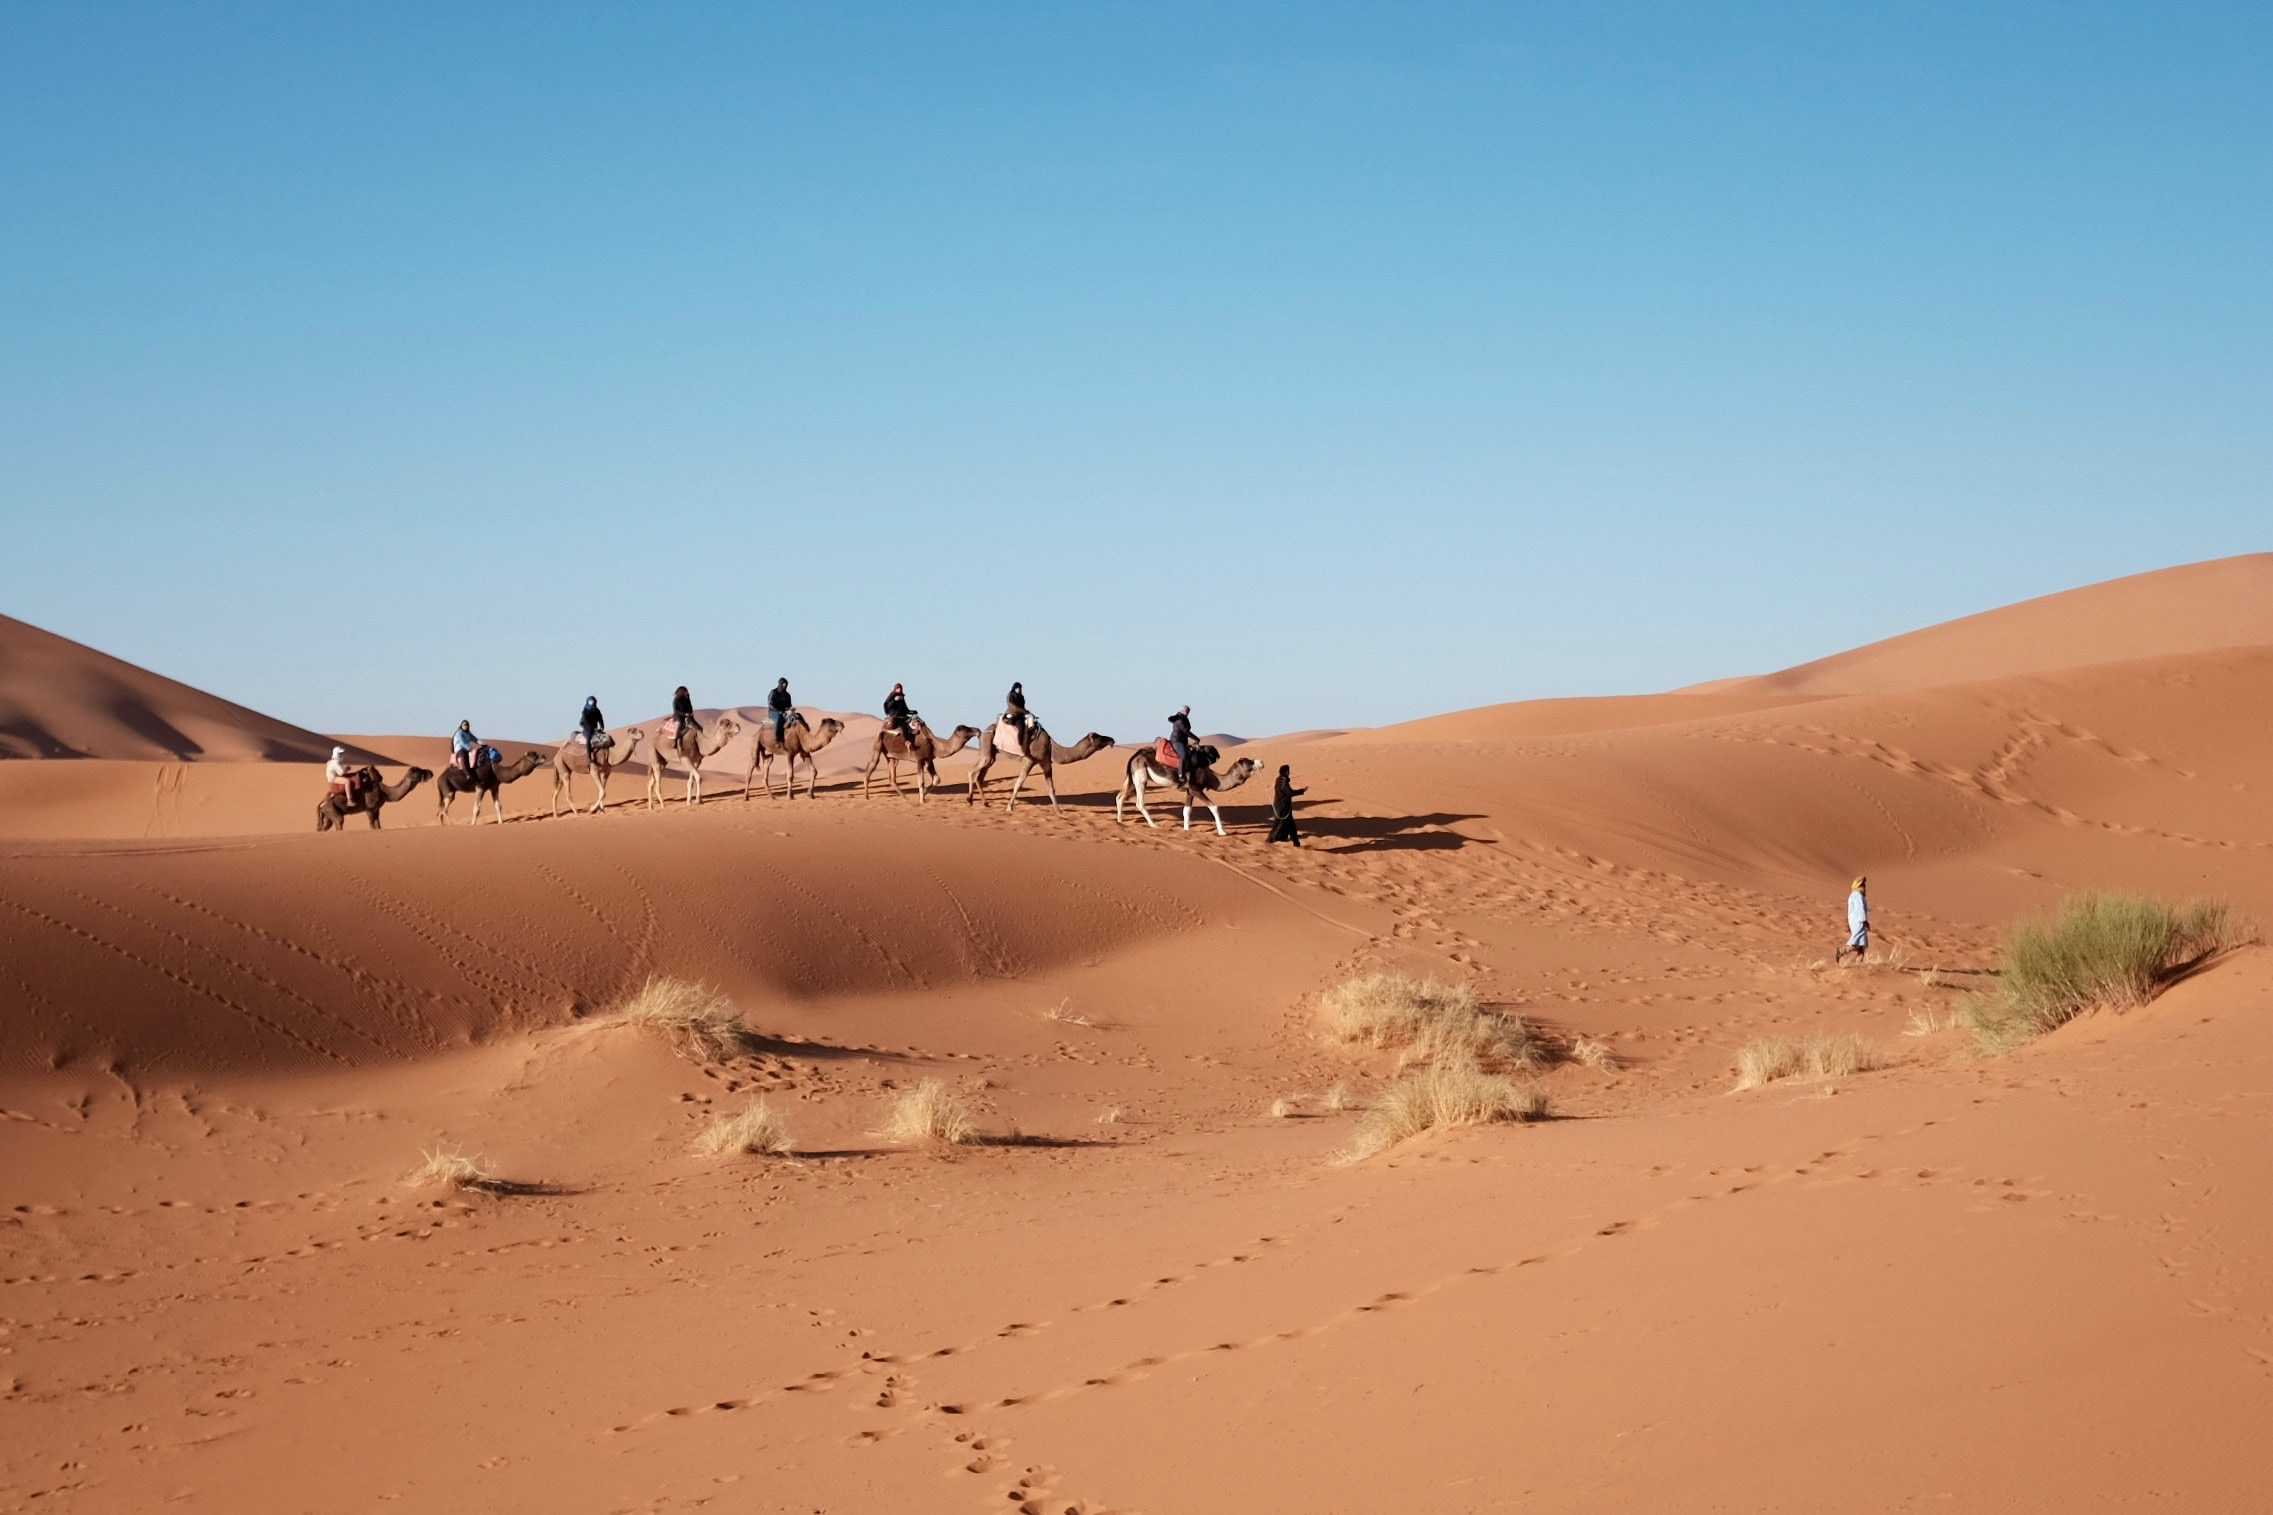 People ride camels through the dry desert sand dunes